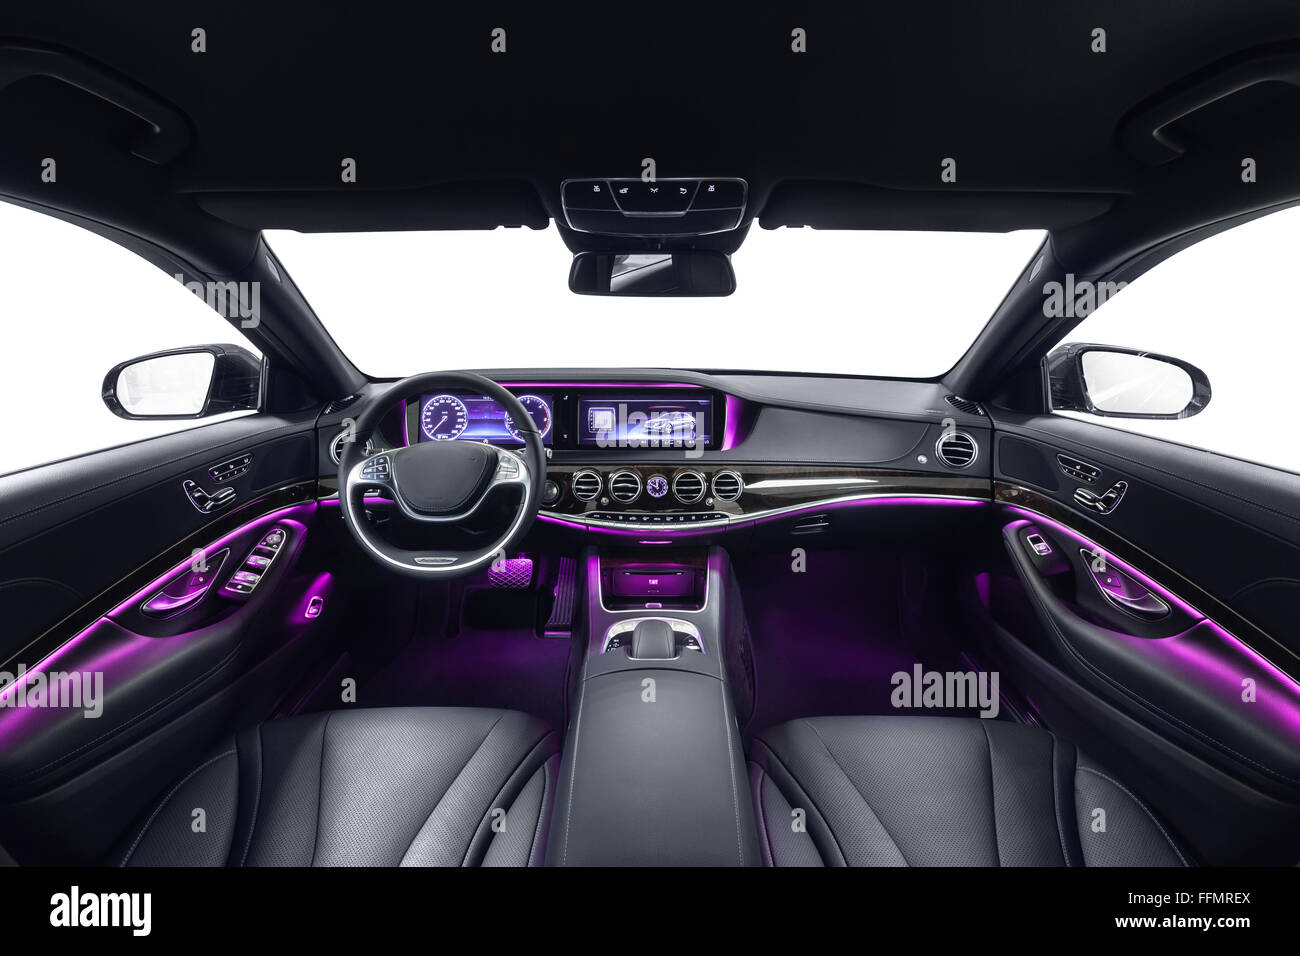 car interior luxury black seats with violet ambient light. Black Bedroom Furniture Sets. Home Design Ideas